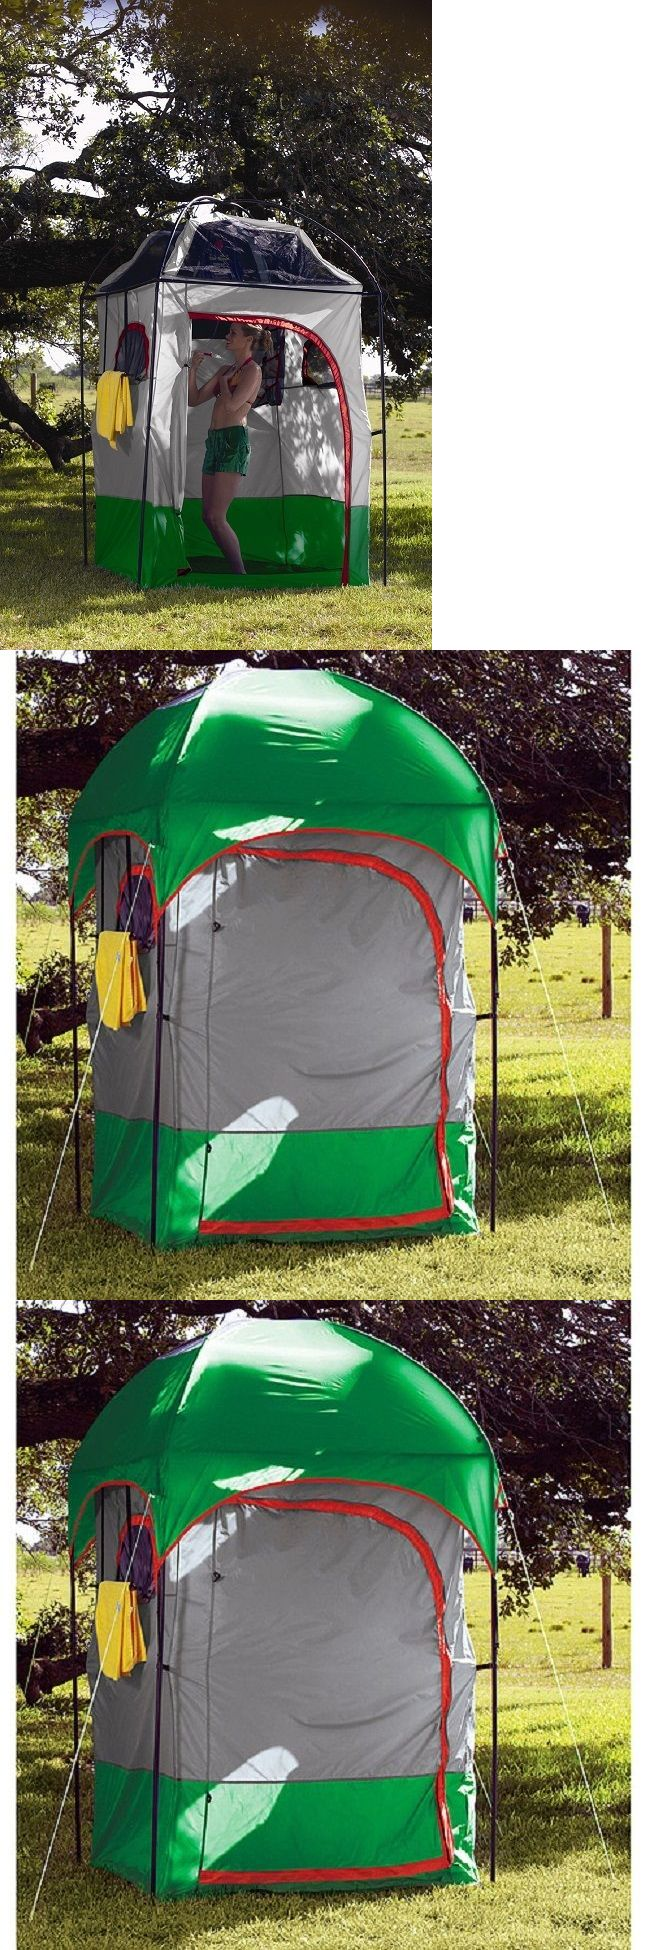 Portable Showers and Accessories 181396: Portable Shower Camping Camp Solar Curtain Privacy Shelter Tent Outdoor Changing -> BUY IT NOW ONLY: $119.54 on eBay!